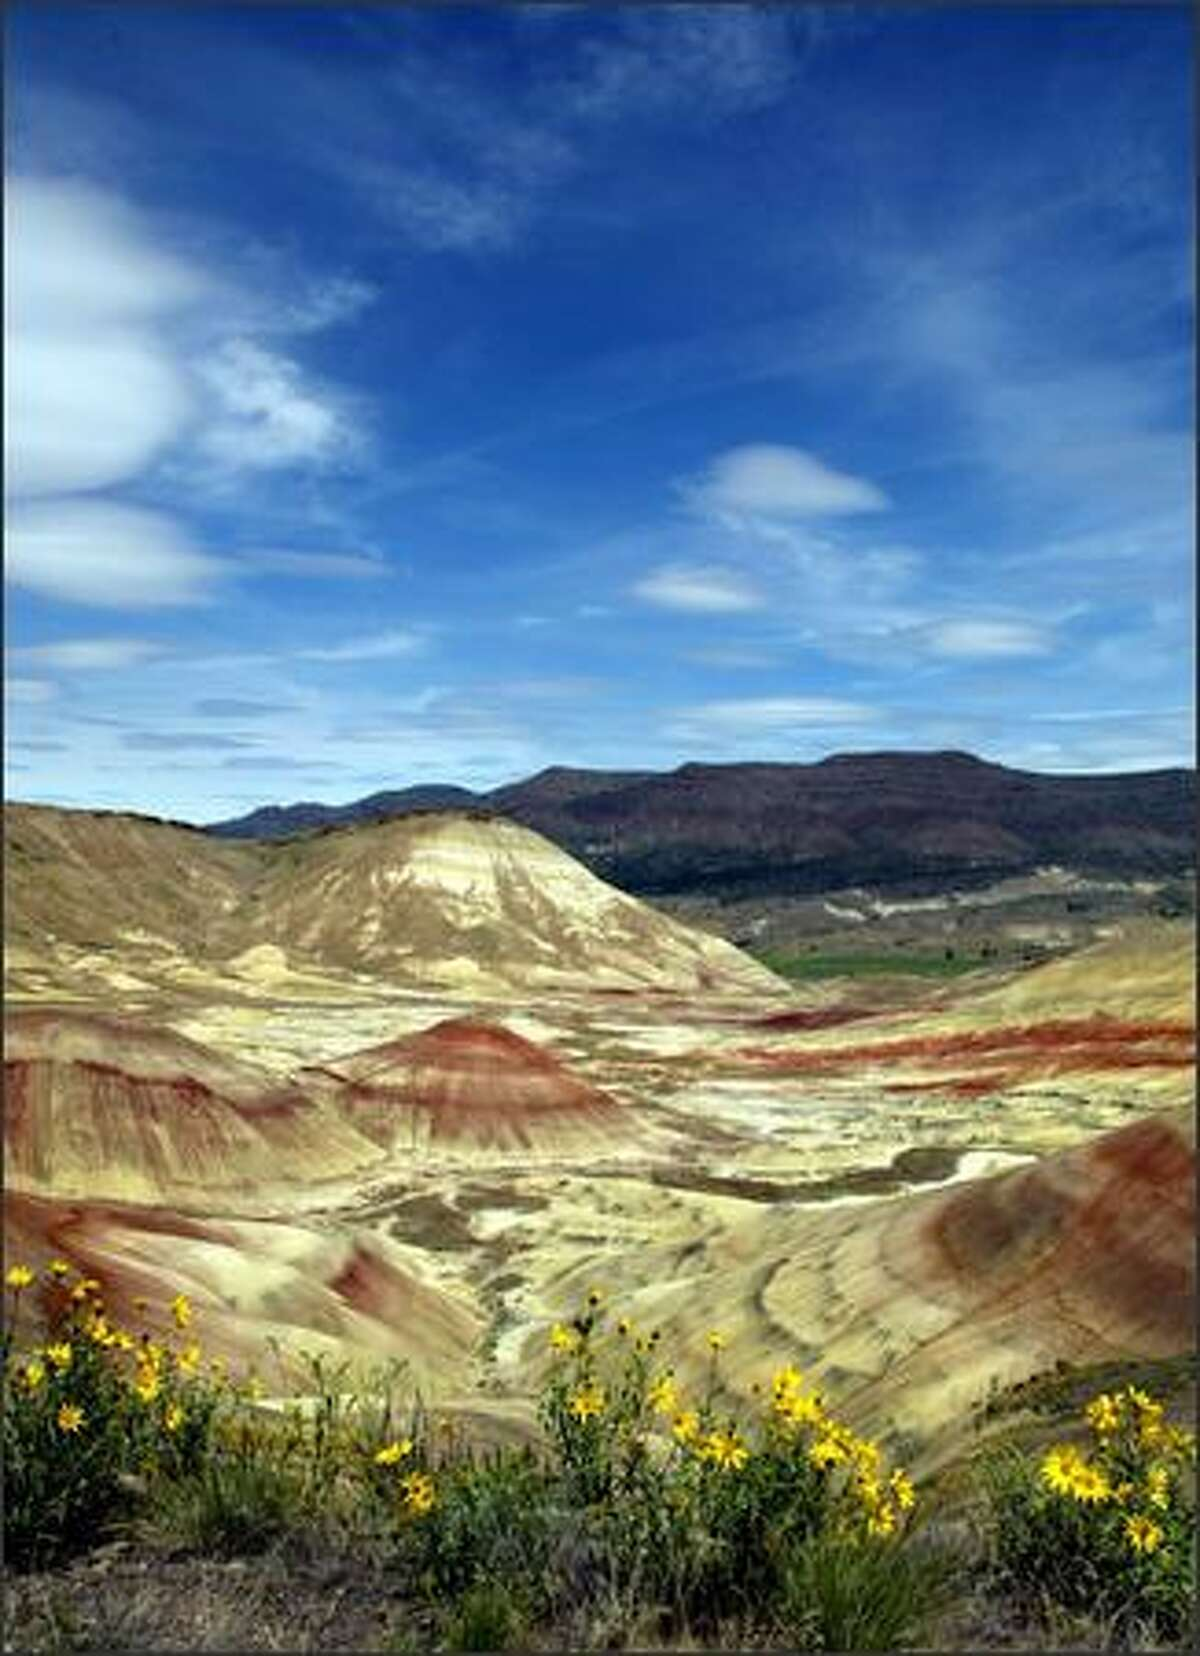 A view of the Painted Hills, foreground, with Carrol Rim in the center and the Sutton Mountains in the background.